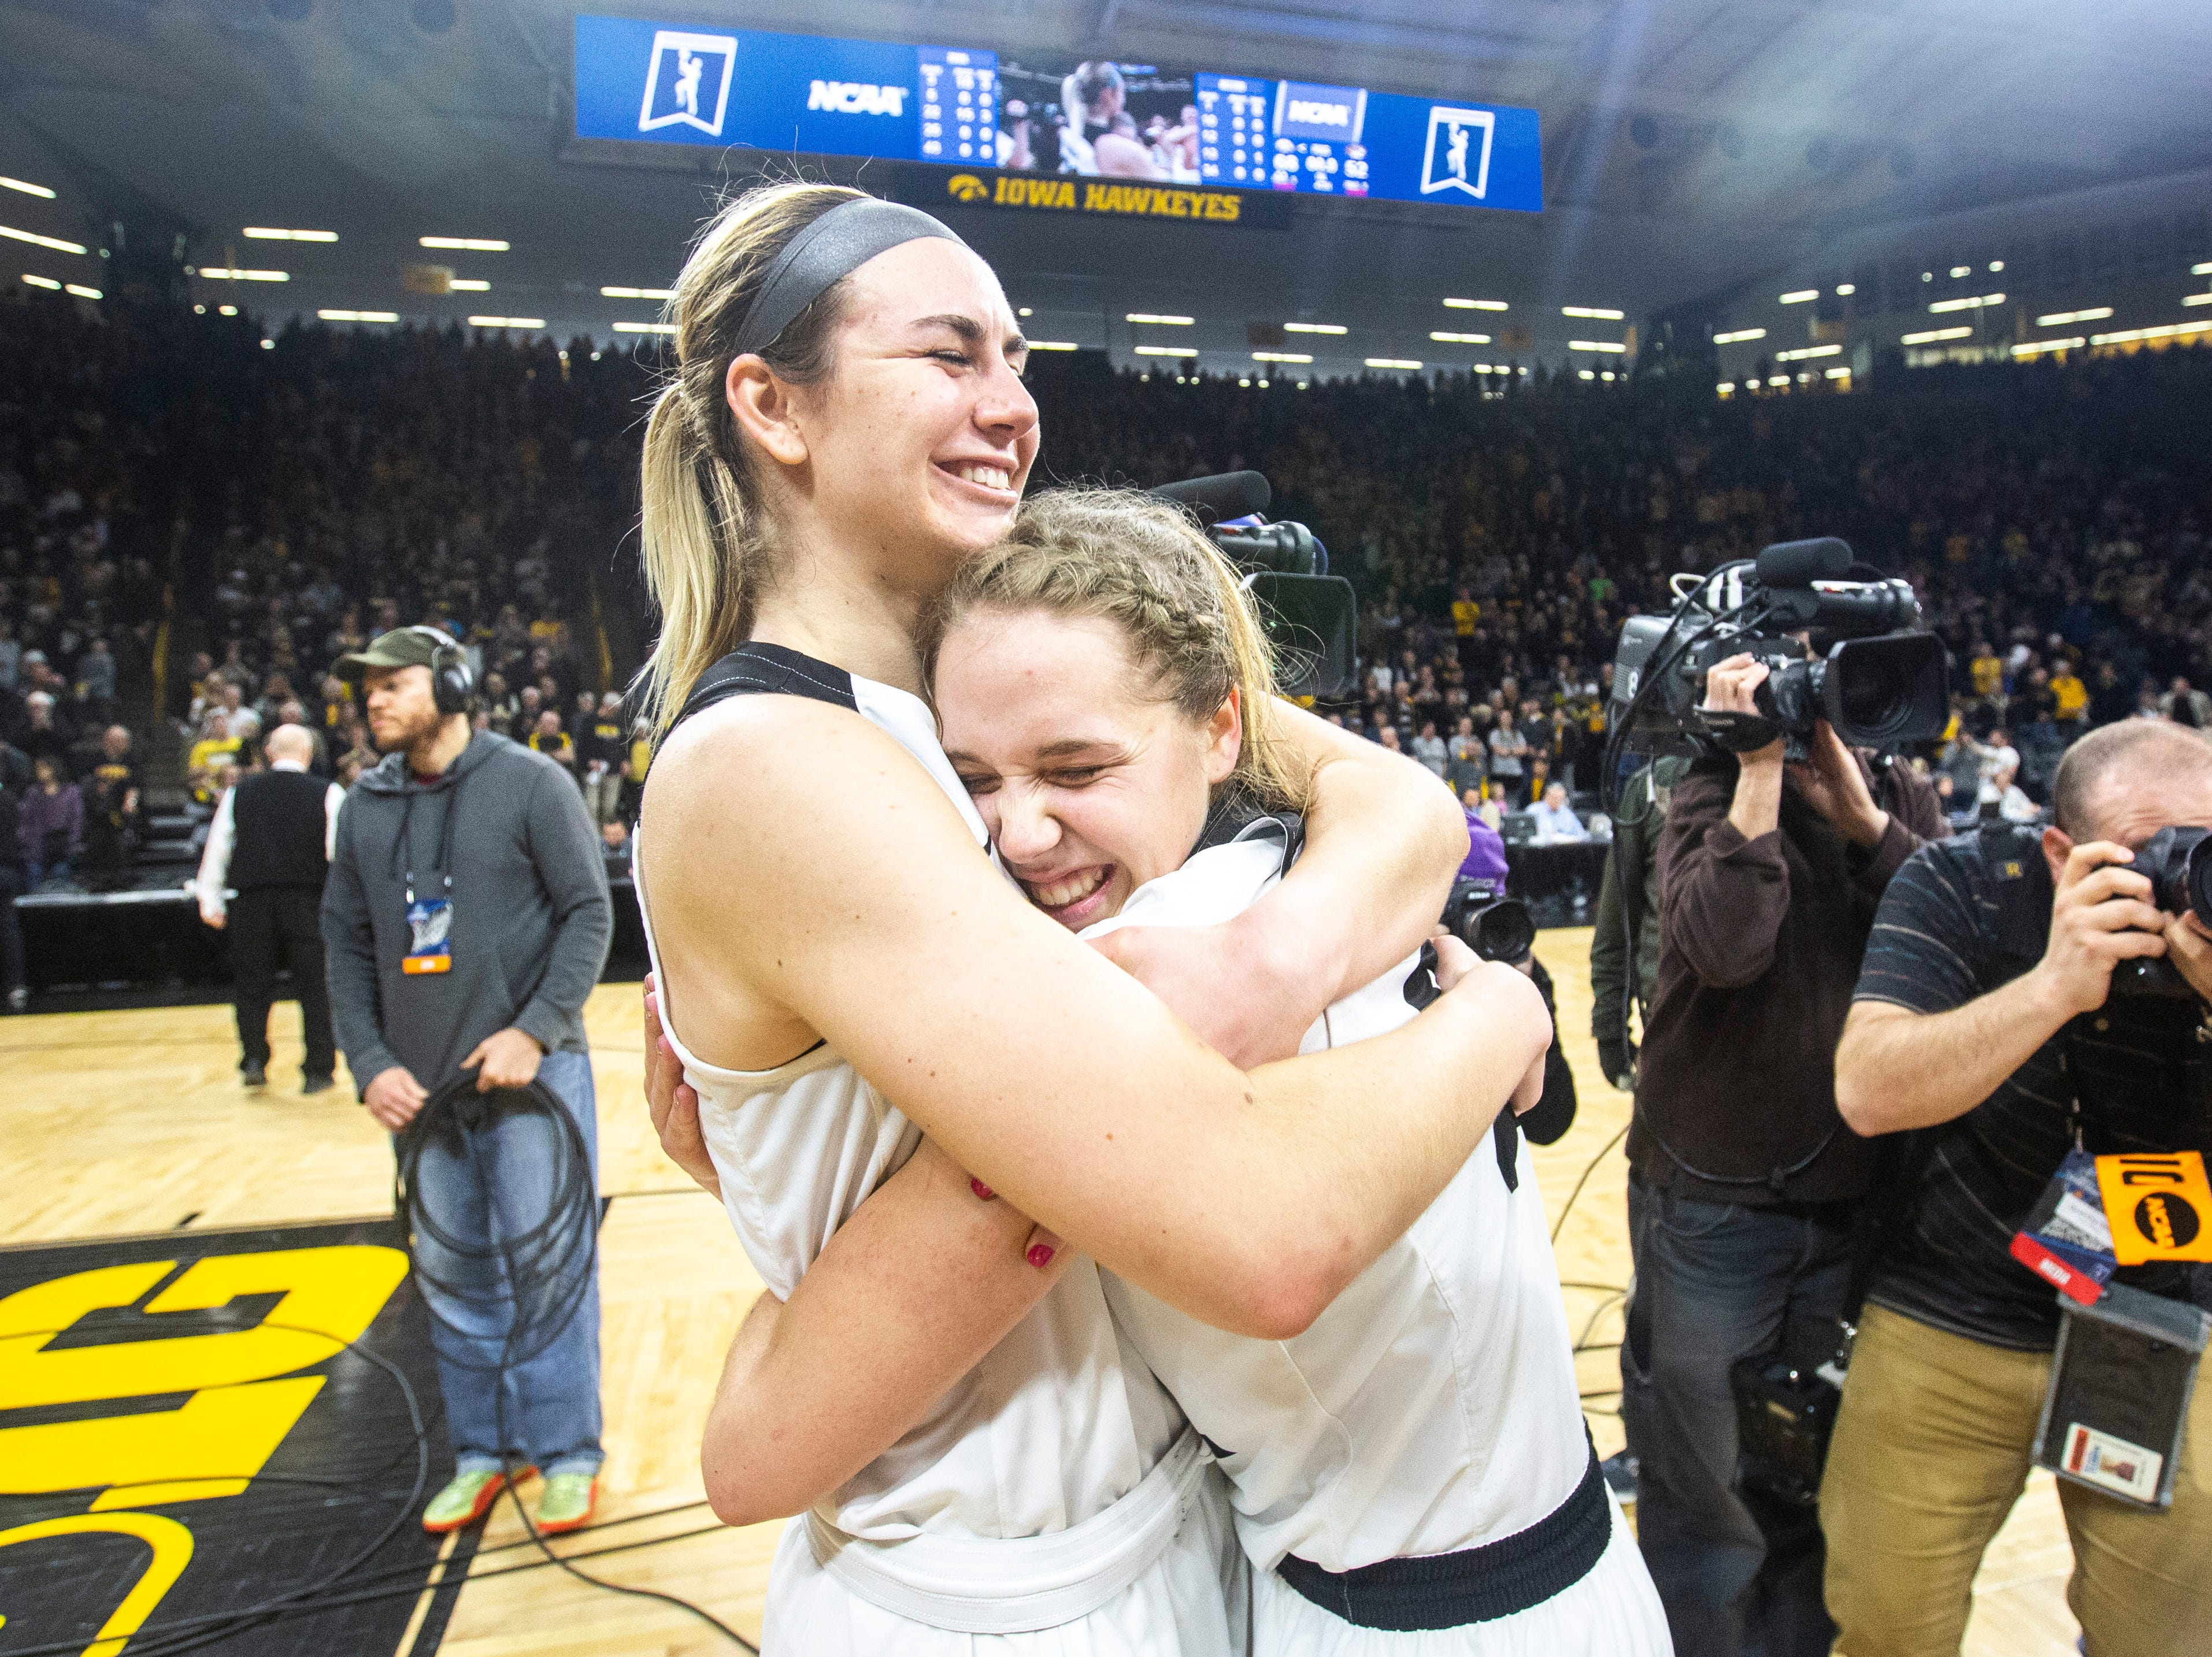 Iowa forward Hannah Stewart, left, embraces Iowa guard Kathleen Doyle during a NCAA women's basketball tournament second-round game, Sunday, March 24, 2019, at Carver-Hawkeye Arena in Iowa City, Iowa.